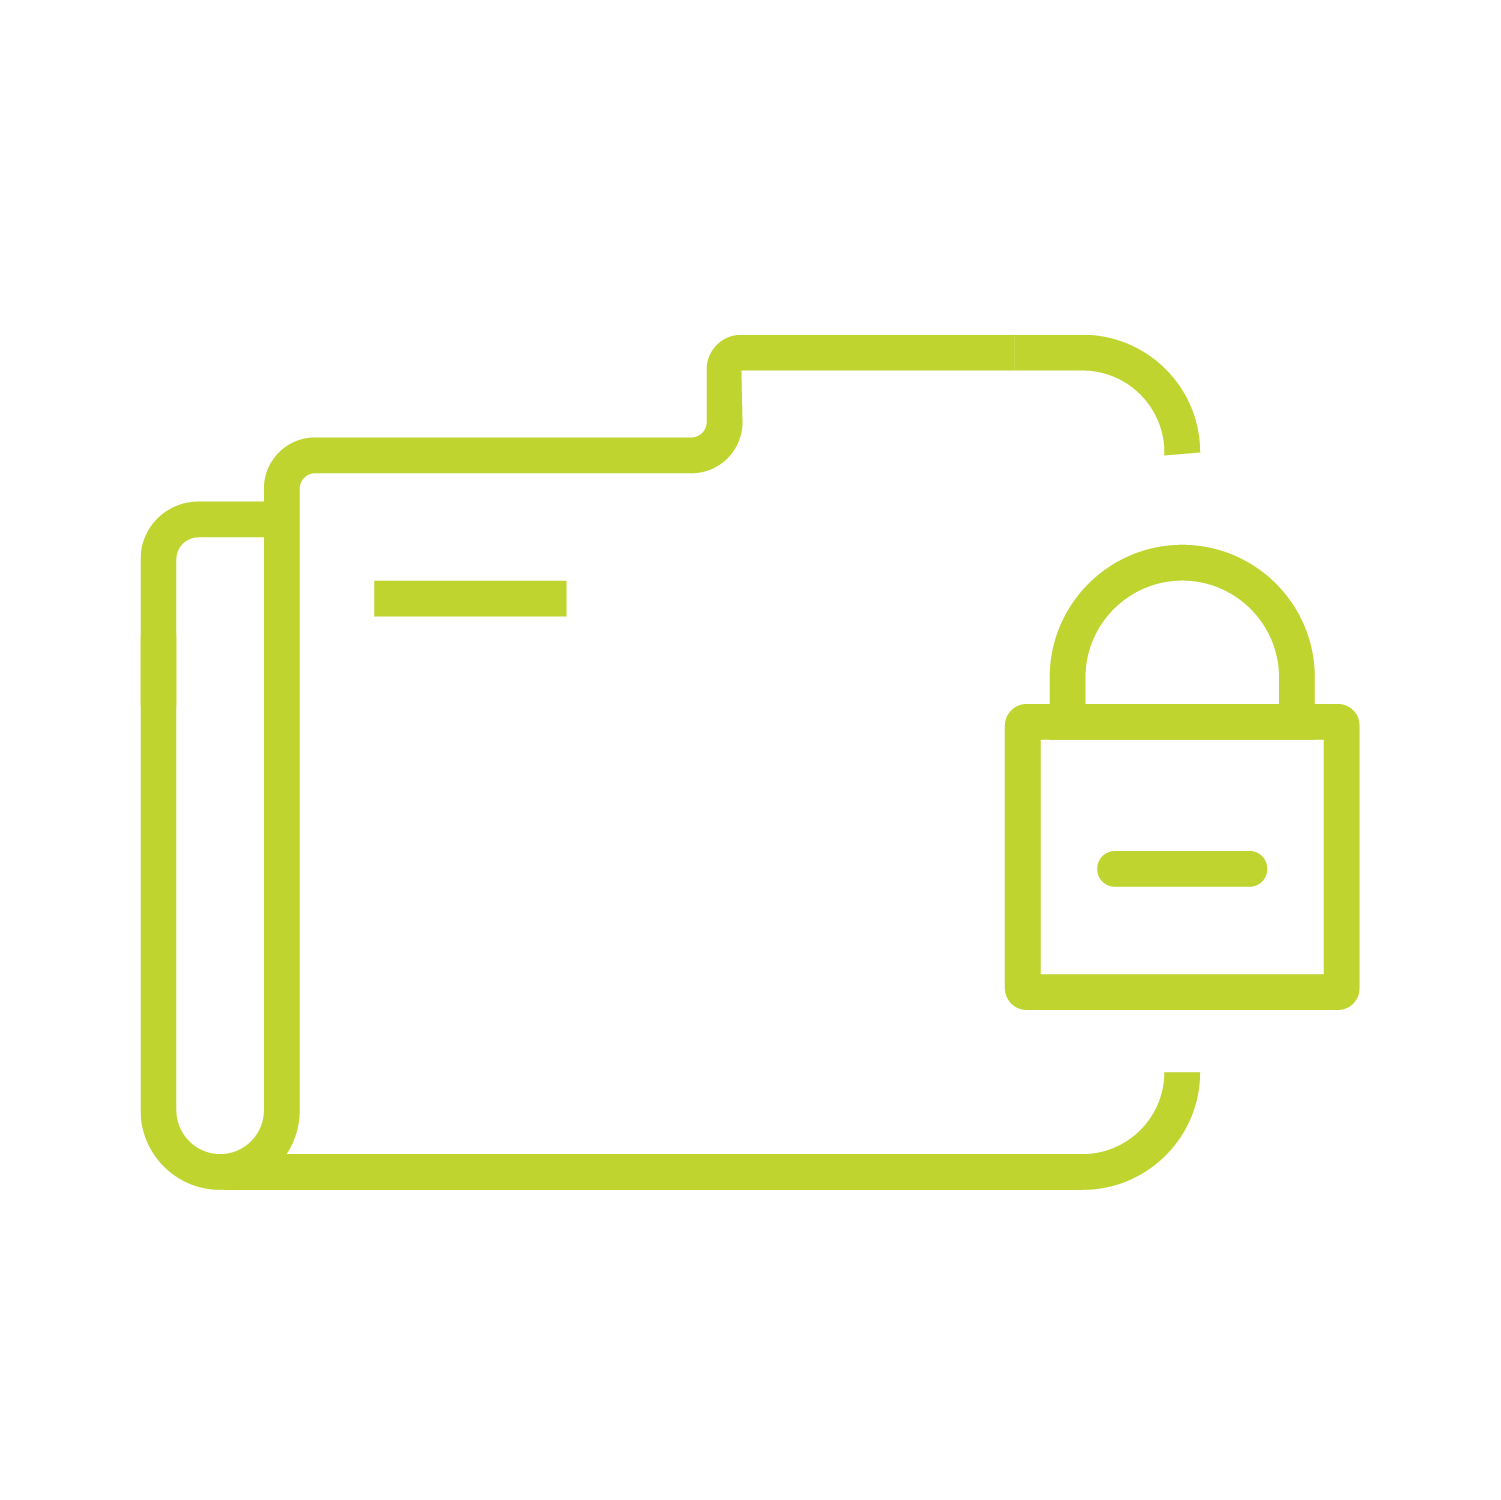 Green icon of a folder with a padlock on it